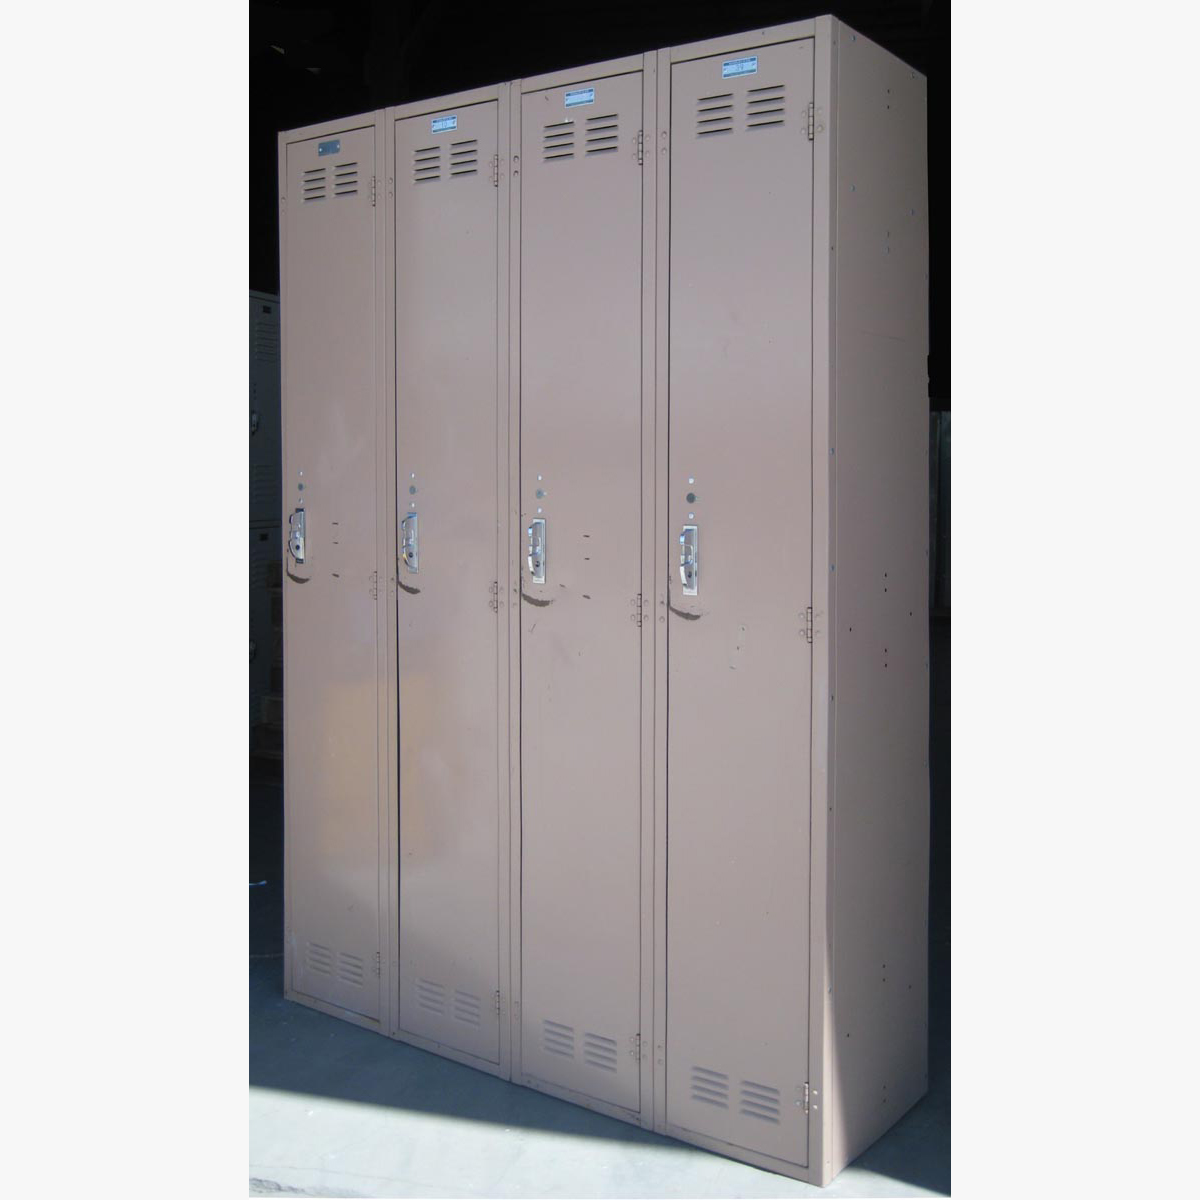 Single Tier Metal Storage Lockersimage 1